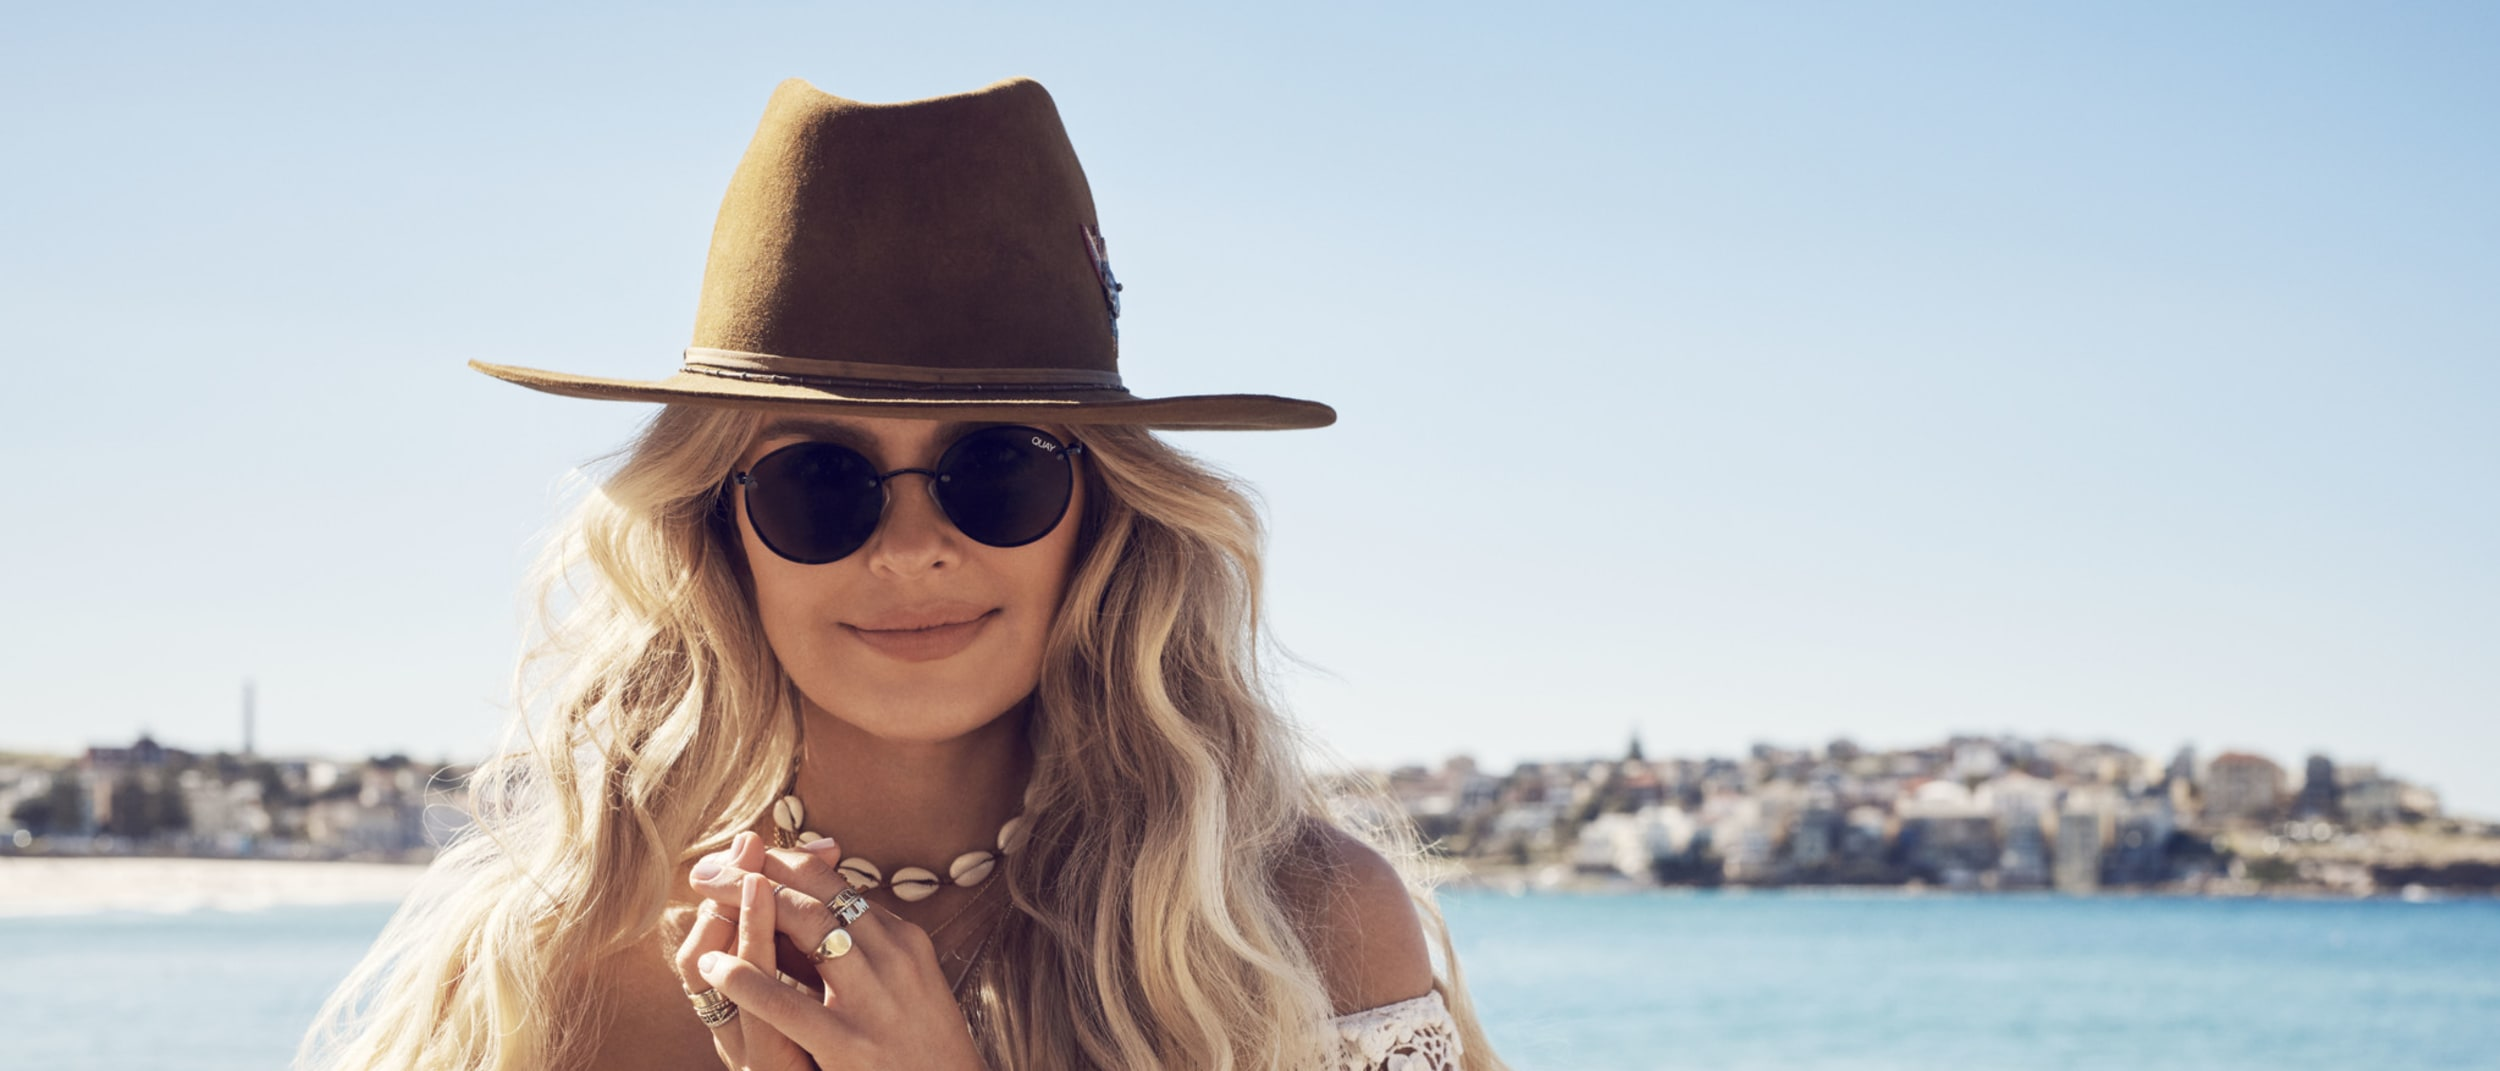 Sunglass Culture: great prices on great brands